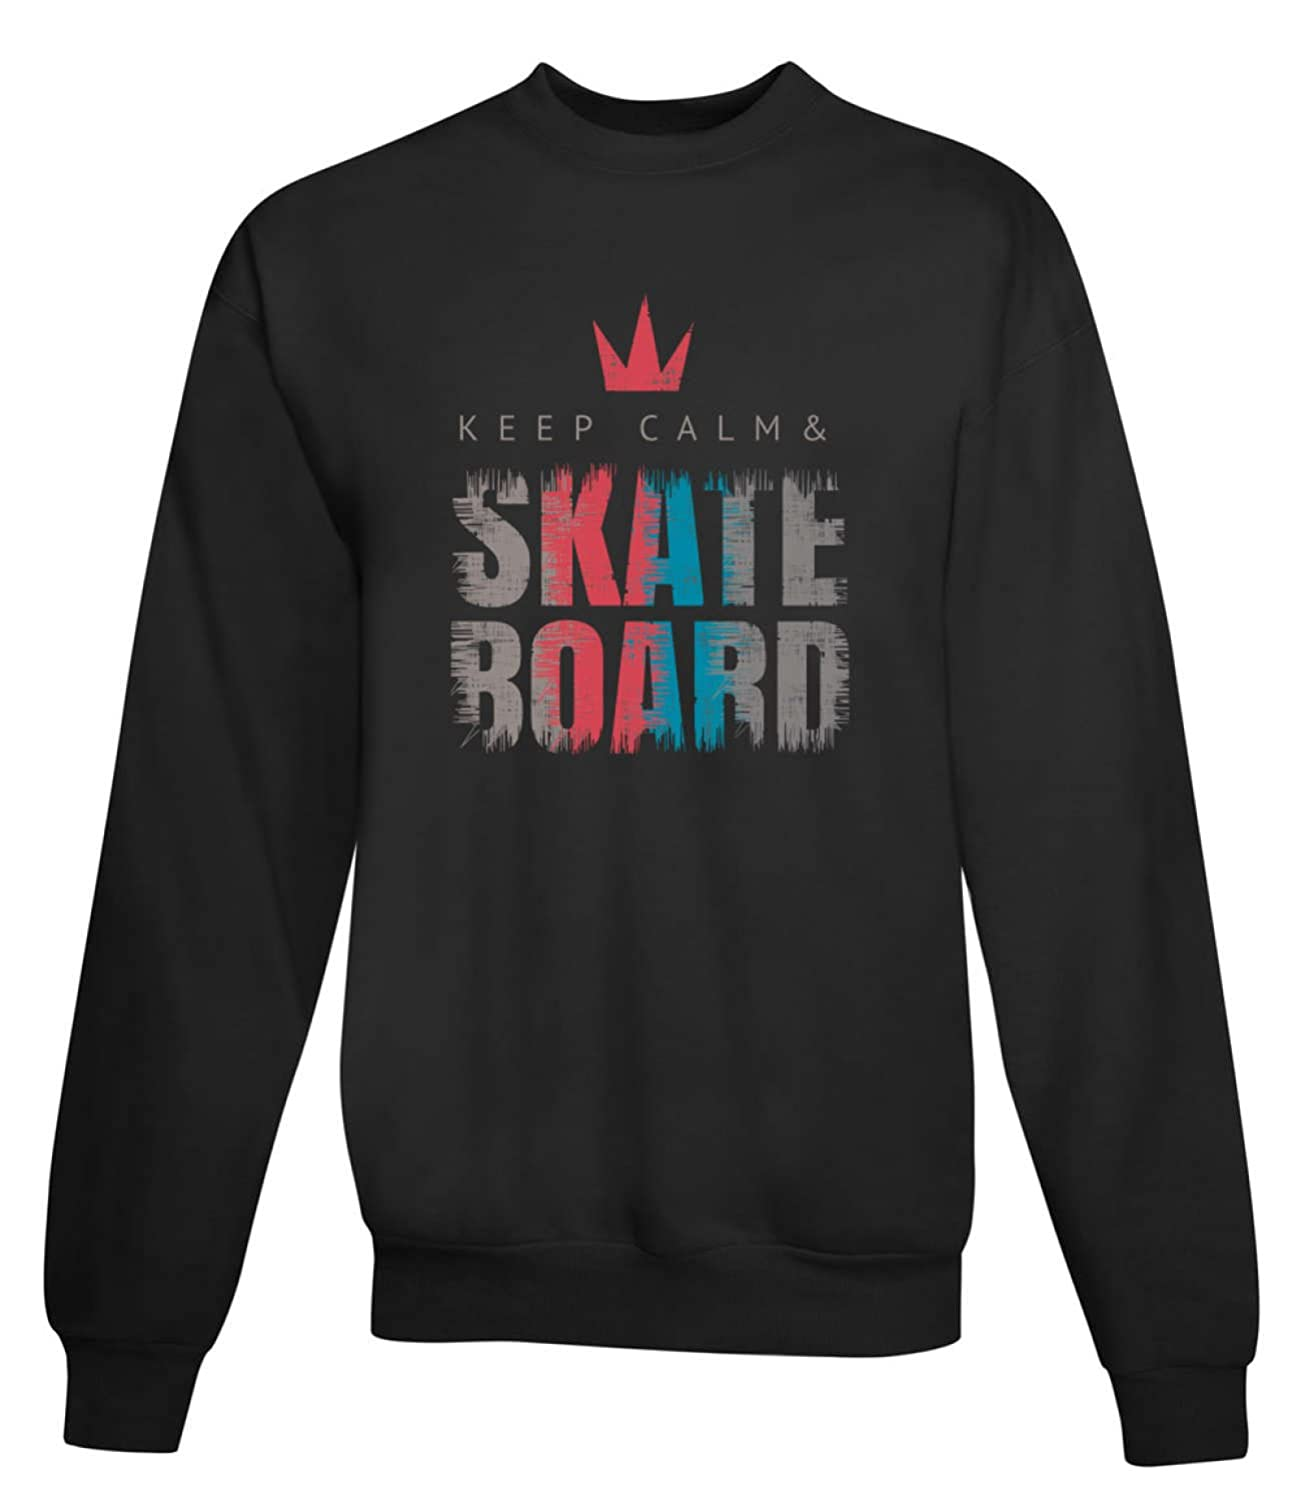 Keep Calm And Do Skate Boarding Women's Unisex Sweatshirt